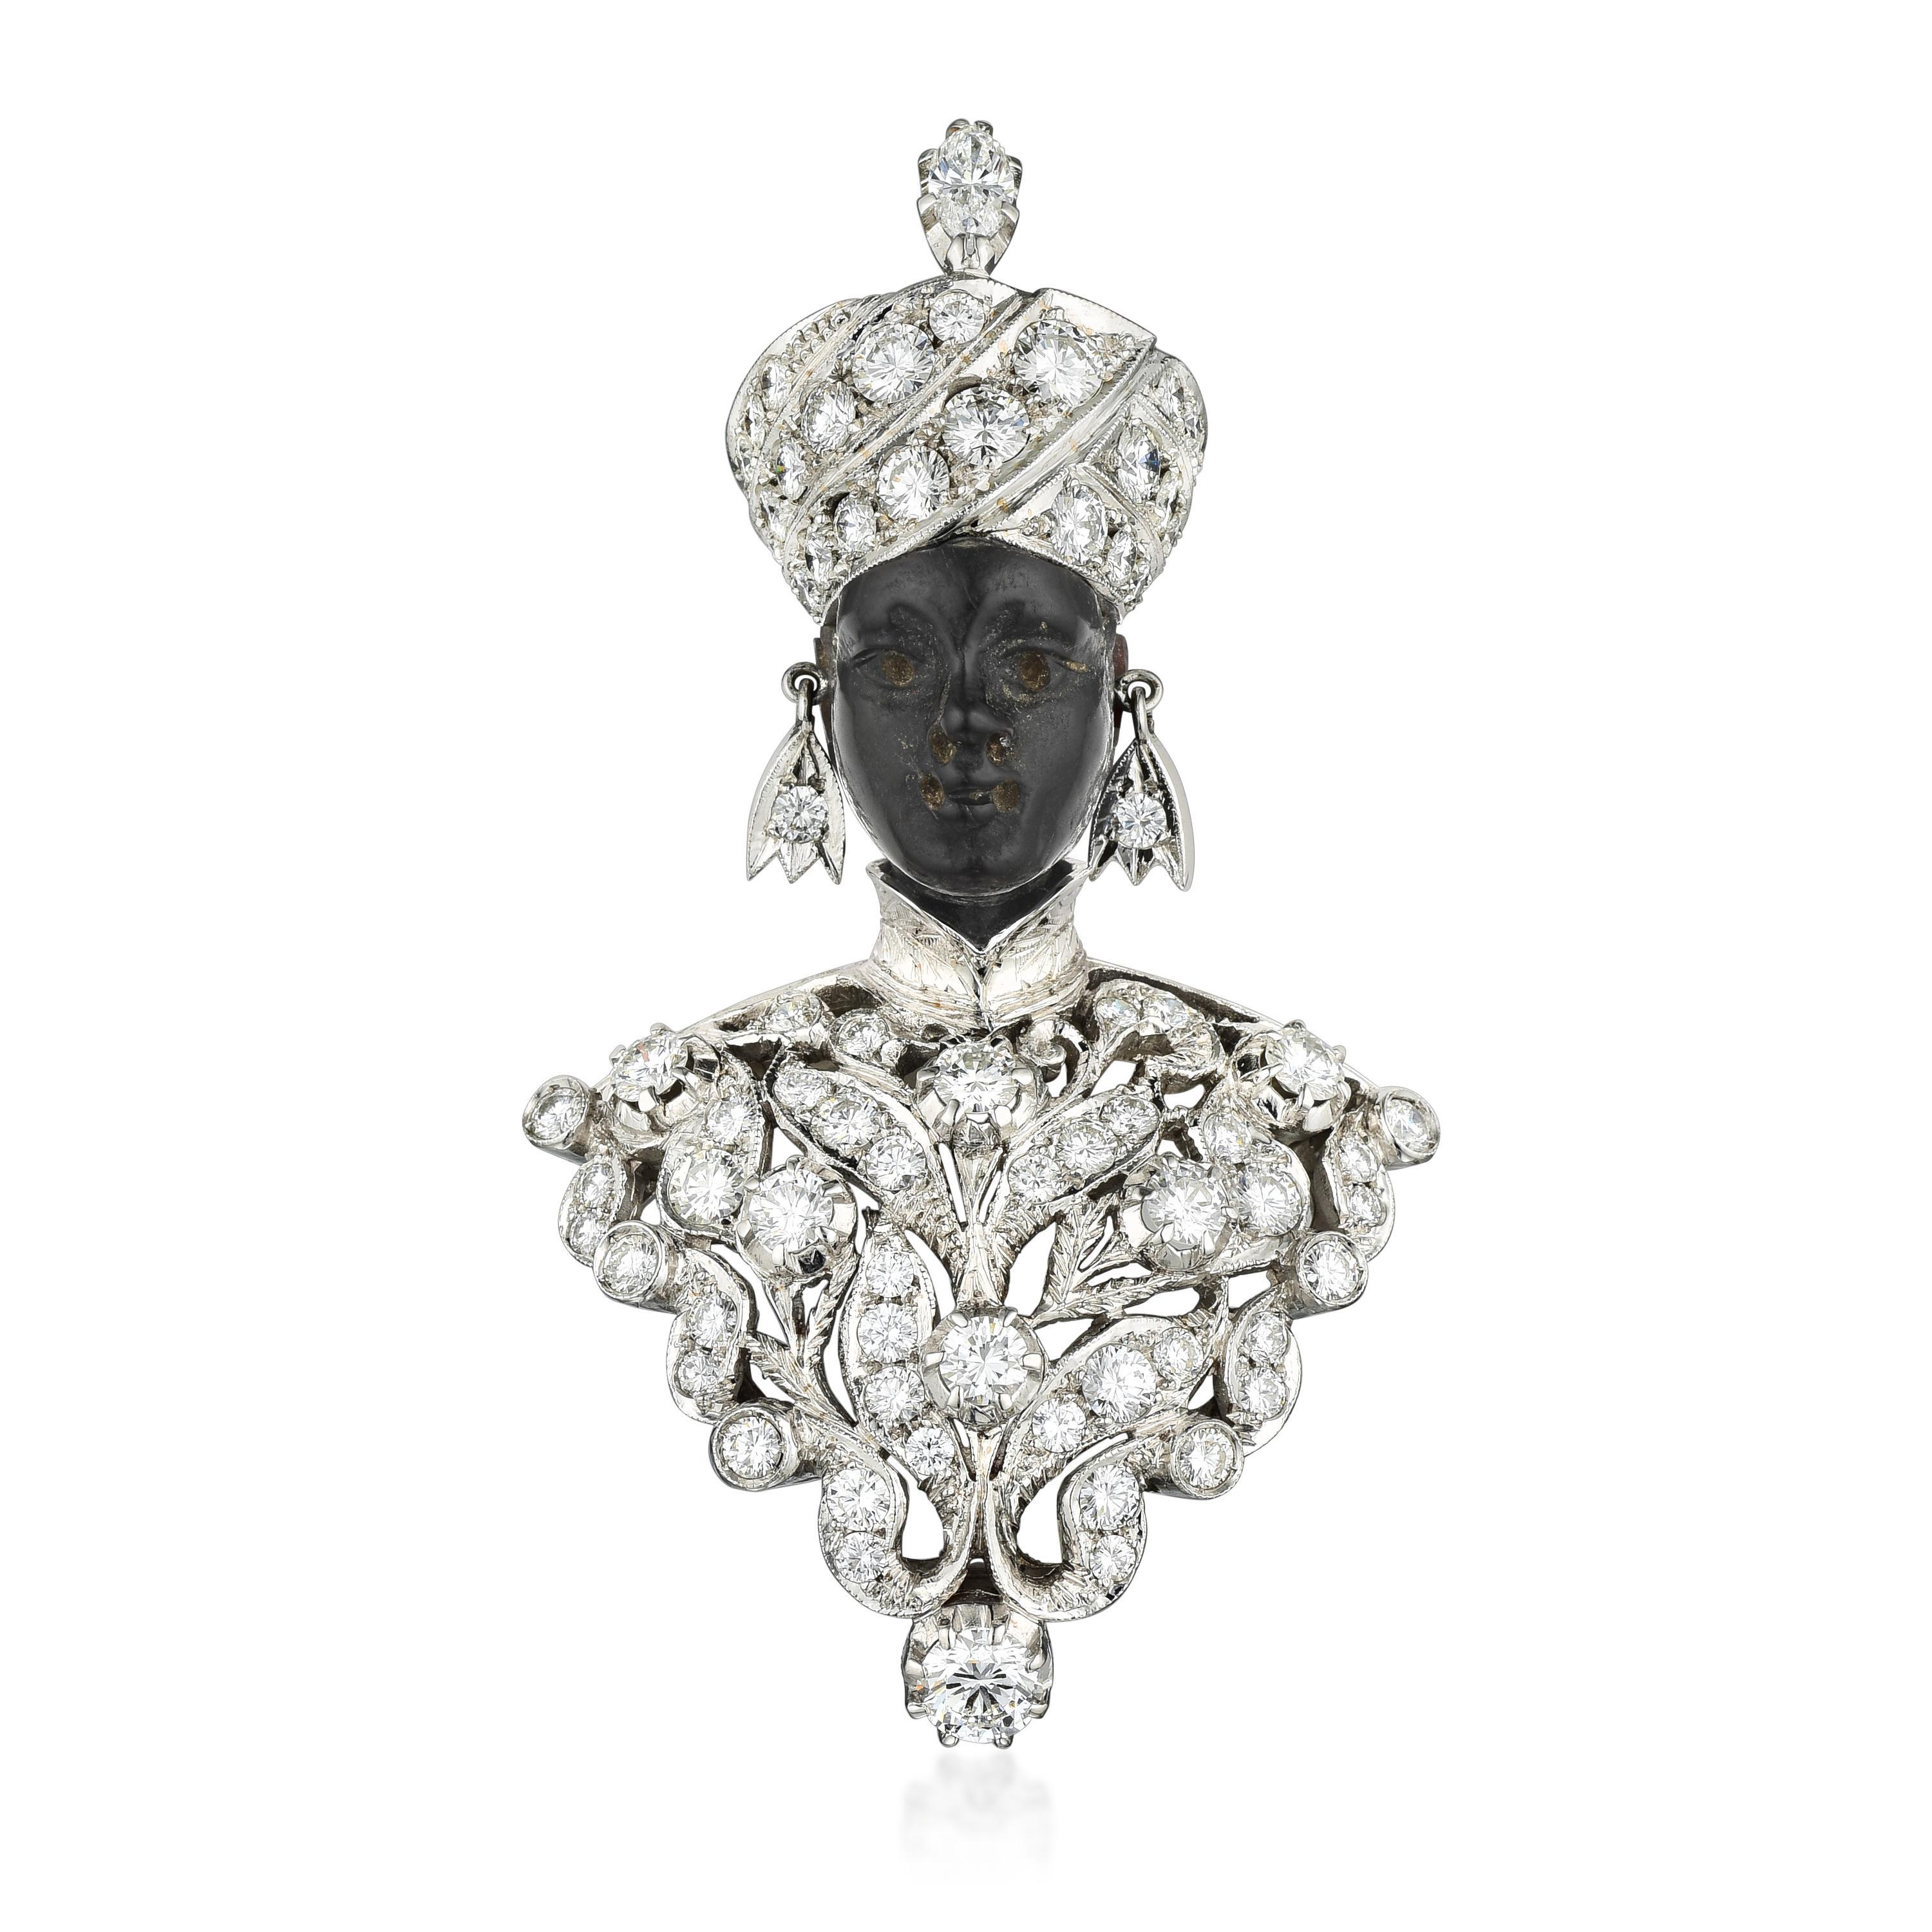 6072b62ee View the full Exclusive Jewels catalog here. The auction is now open for  registrations and pre-auction bidding. If you have any inquiries related to  the ...